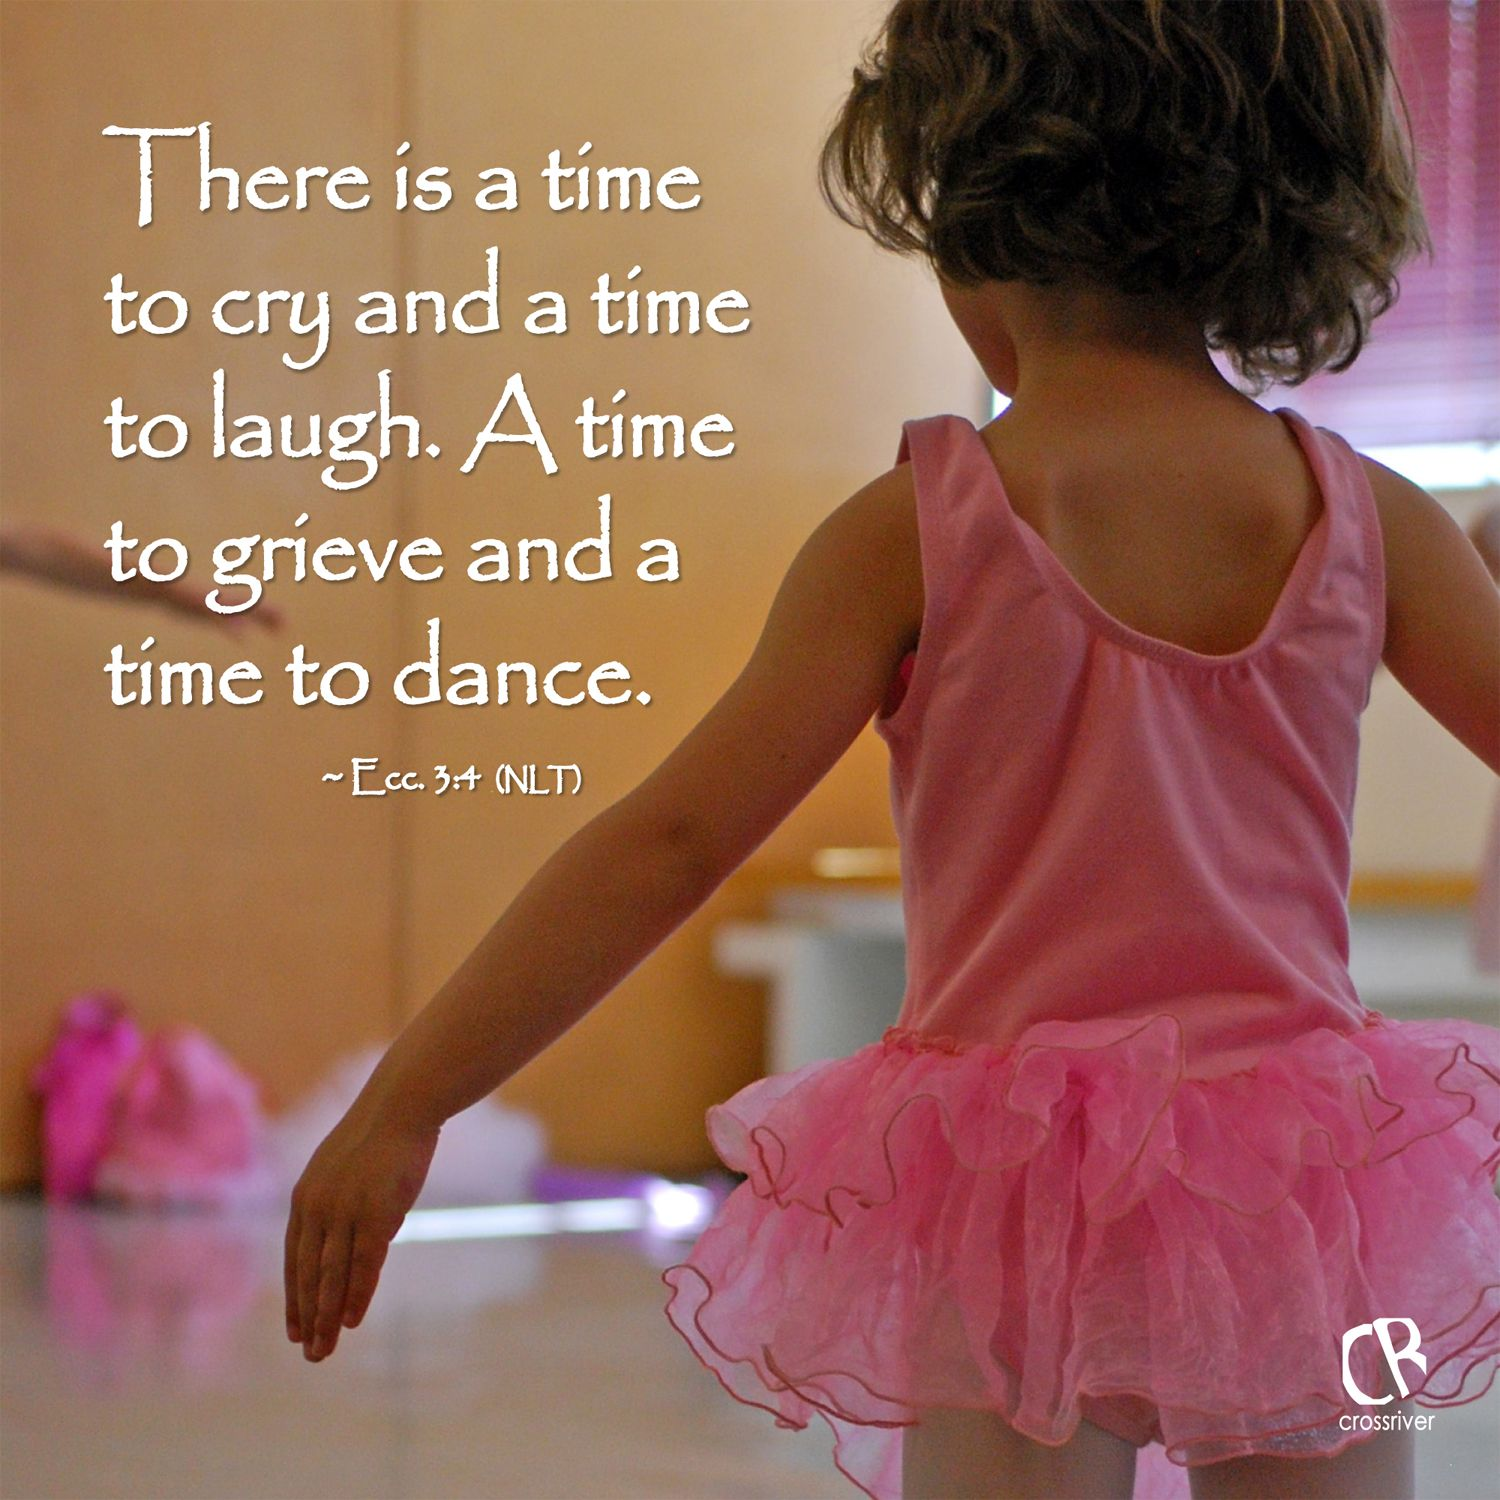 Cry and die inspirational quote motivational thoughts pictures - Inspire Dance Dancer Quotes Ecclesiastes 3 Fabulous Quotes Tiny Dancer Irish Dance Dance Studio Ballet Dancers Bible Verses